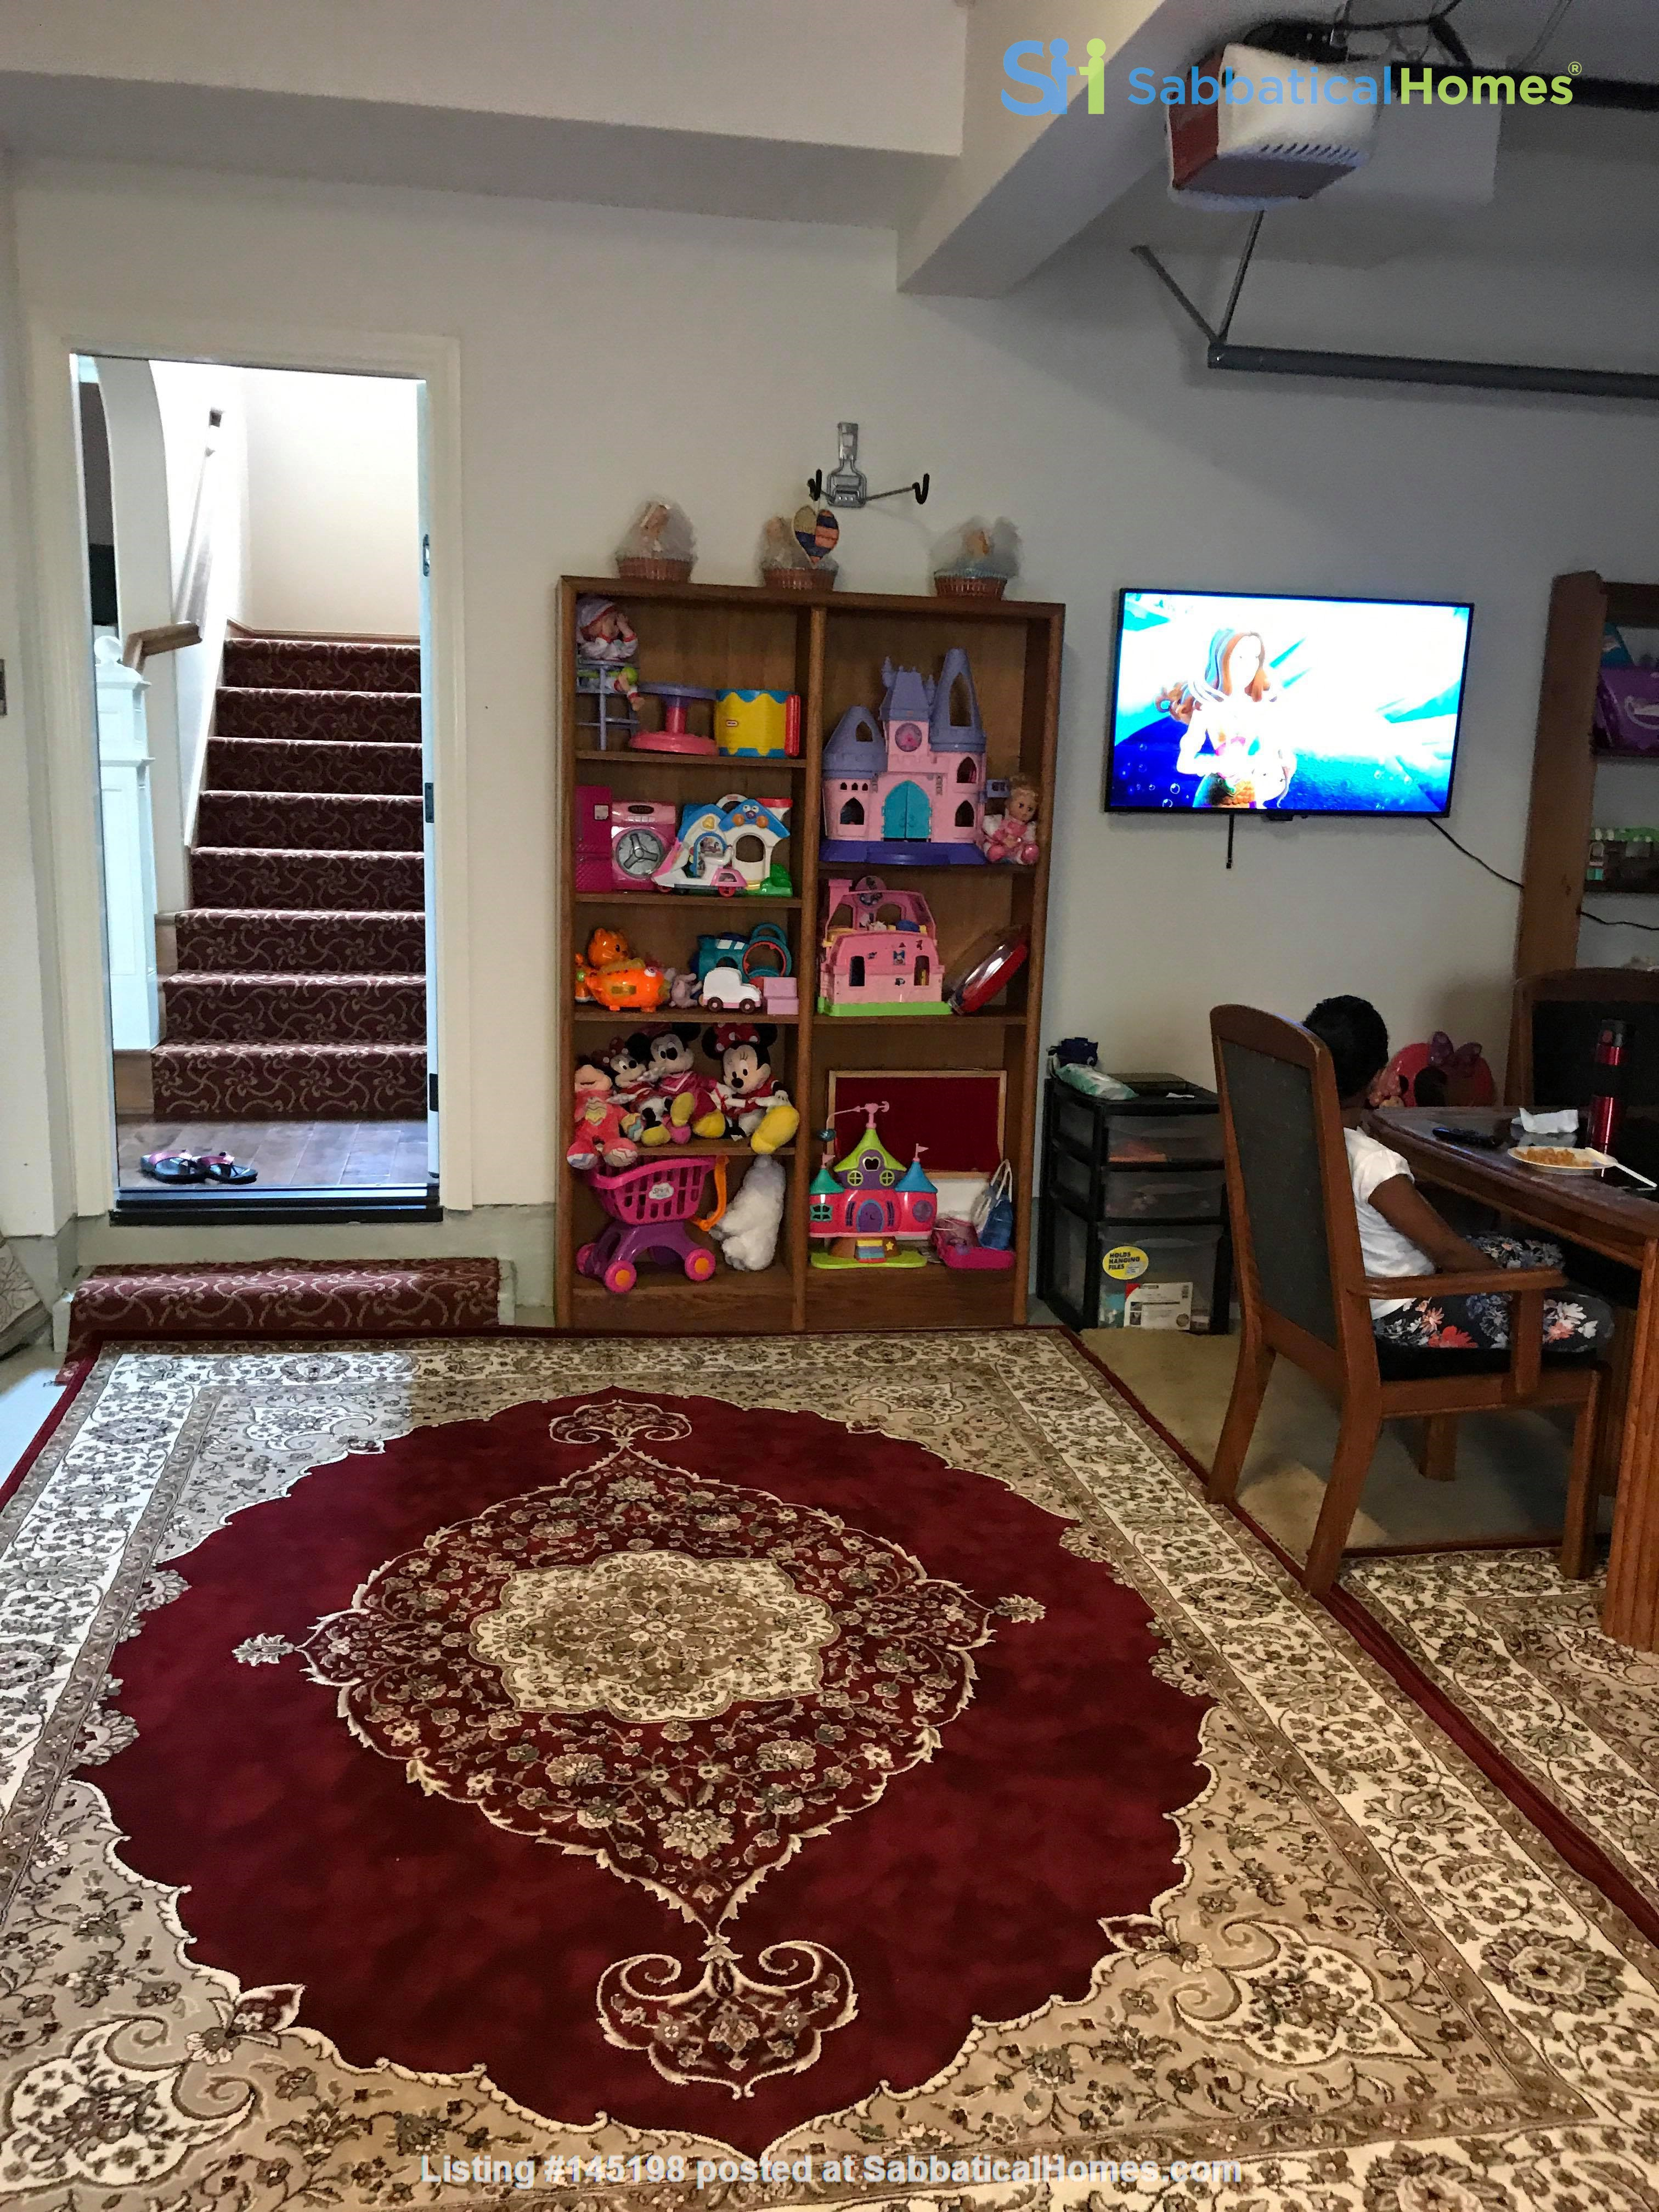 3BR, 2.5Bath at the University Hills Home Rental in Irvine, California, United States 4